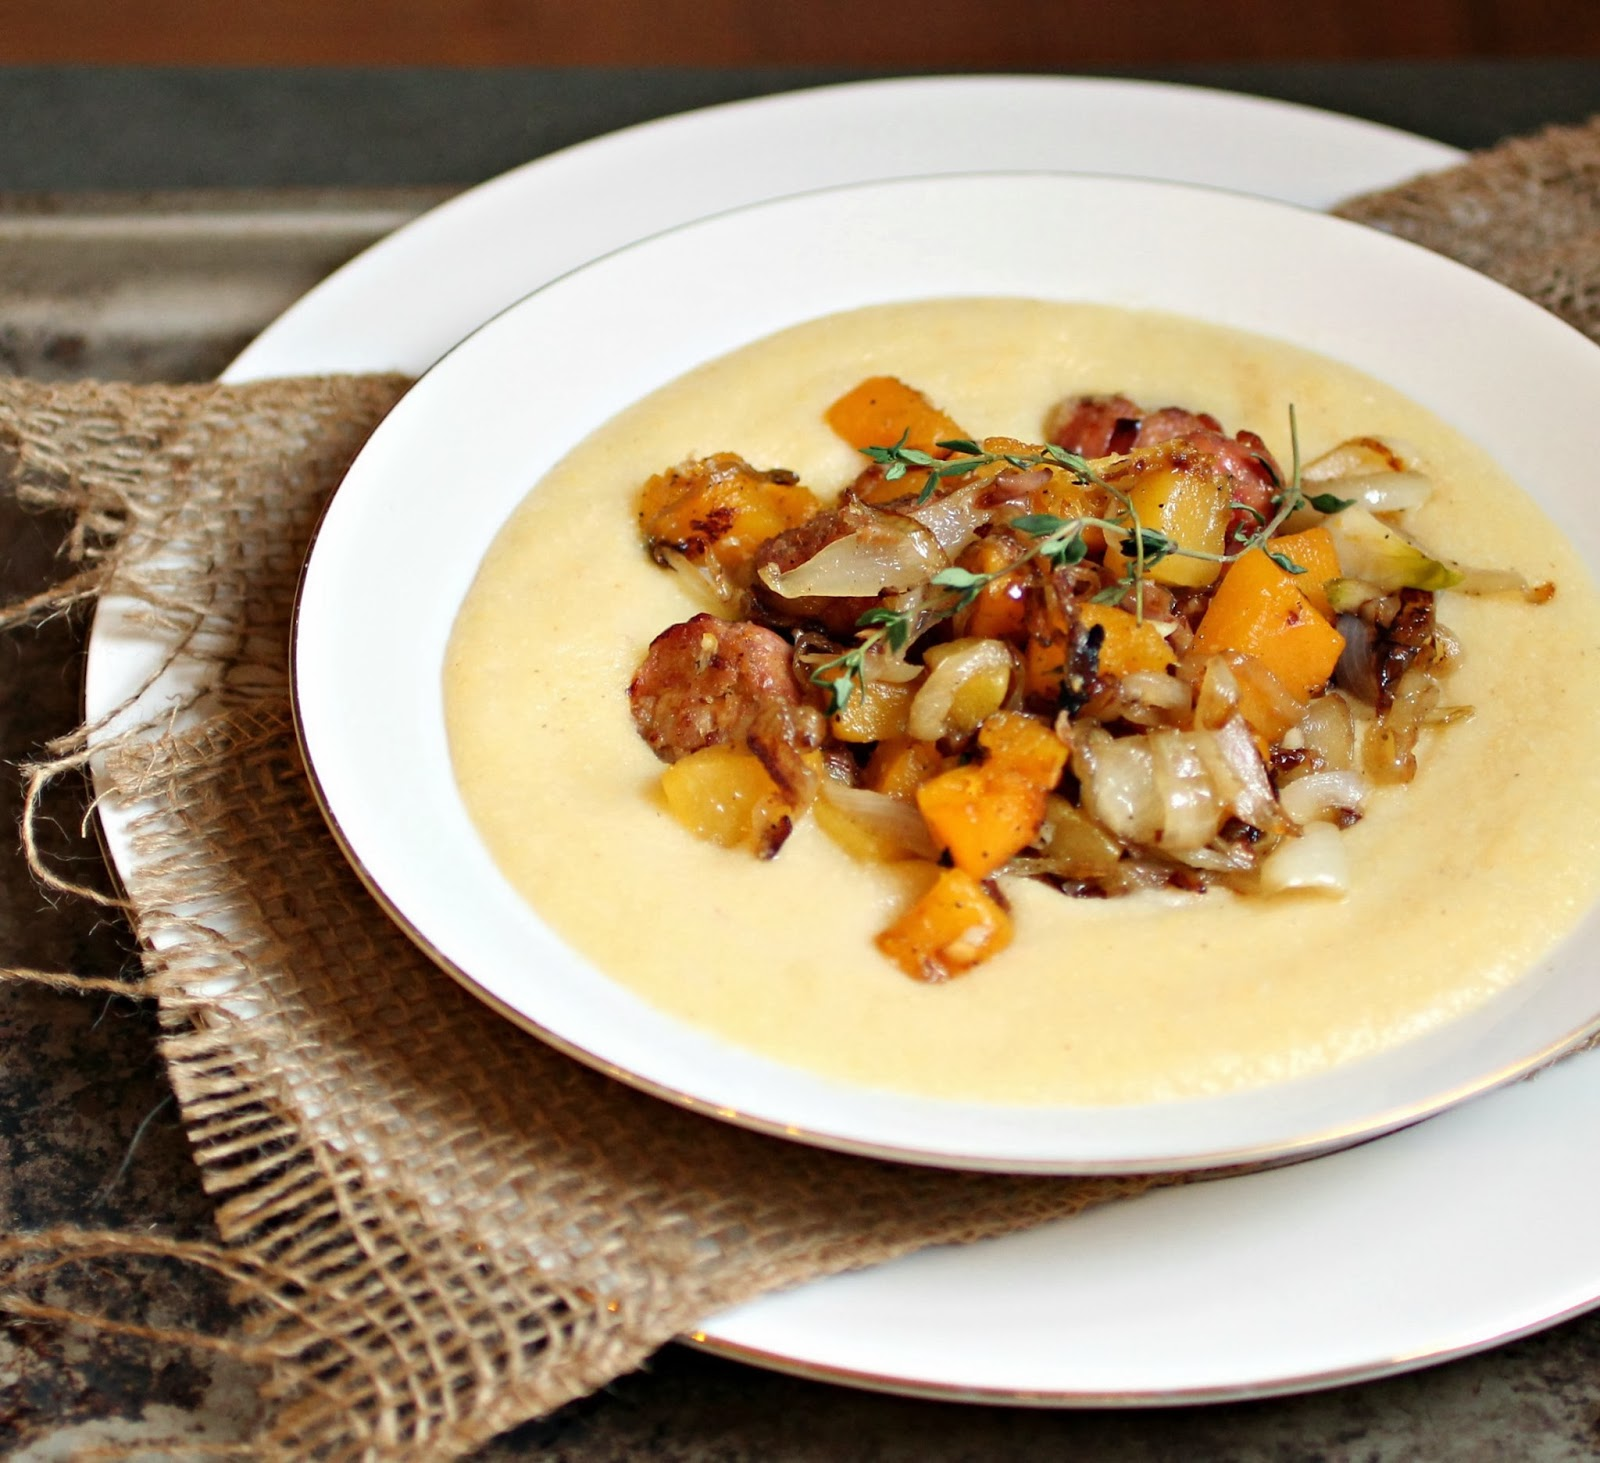 Polenta with Butternut Squash, Sausage and Caramelized Onions